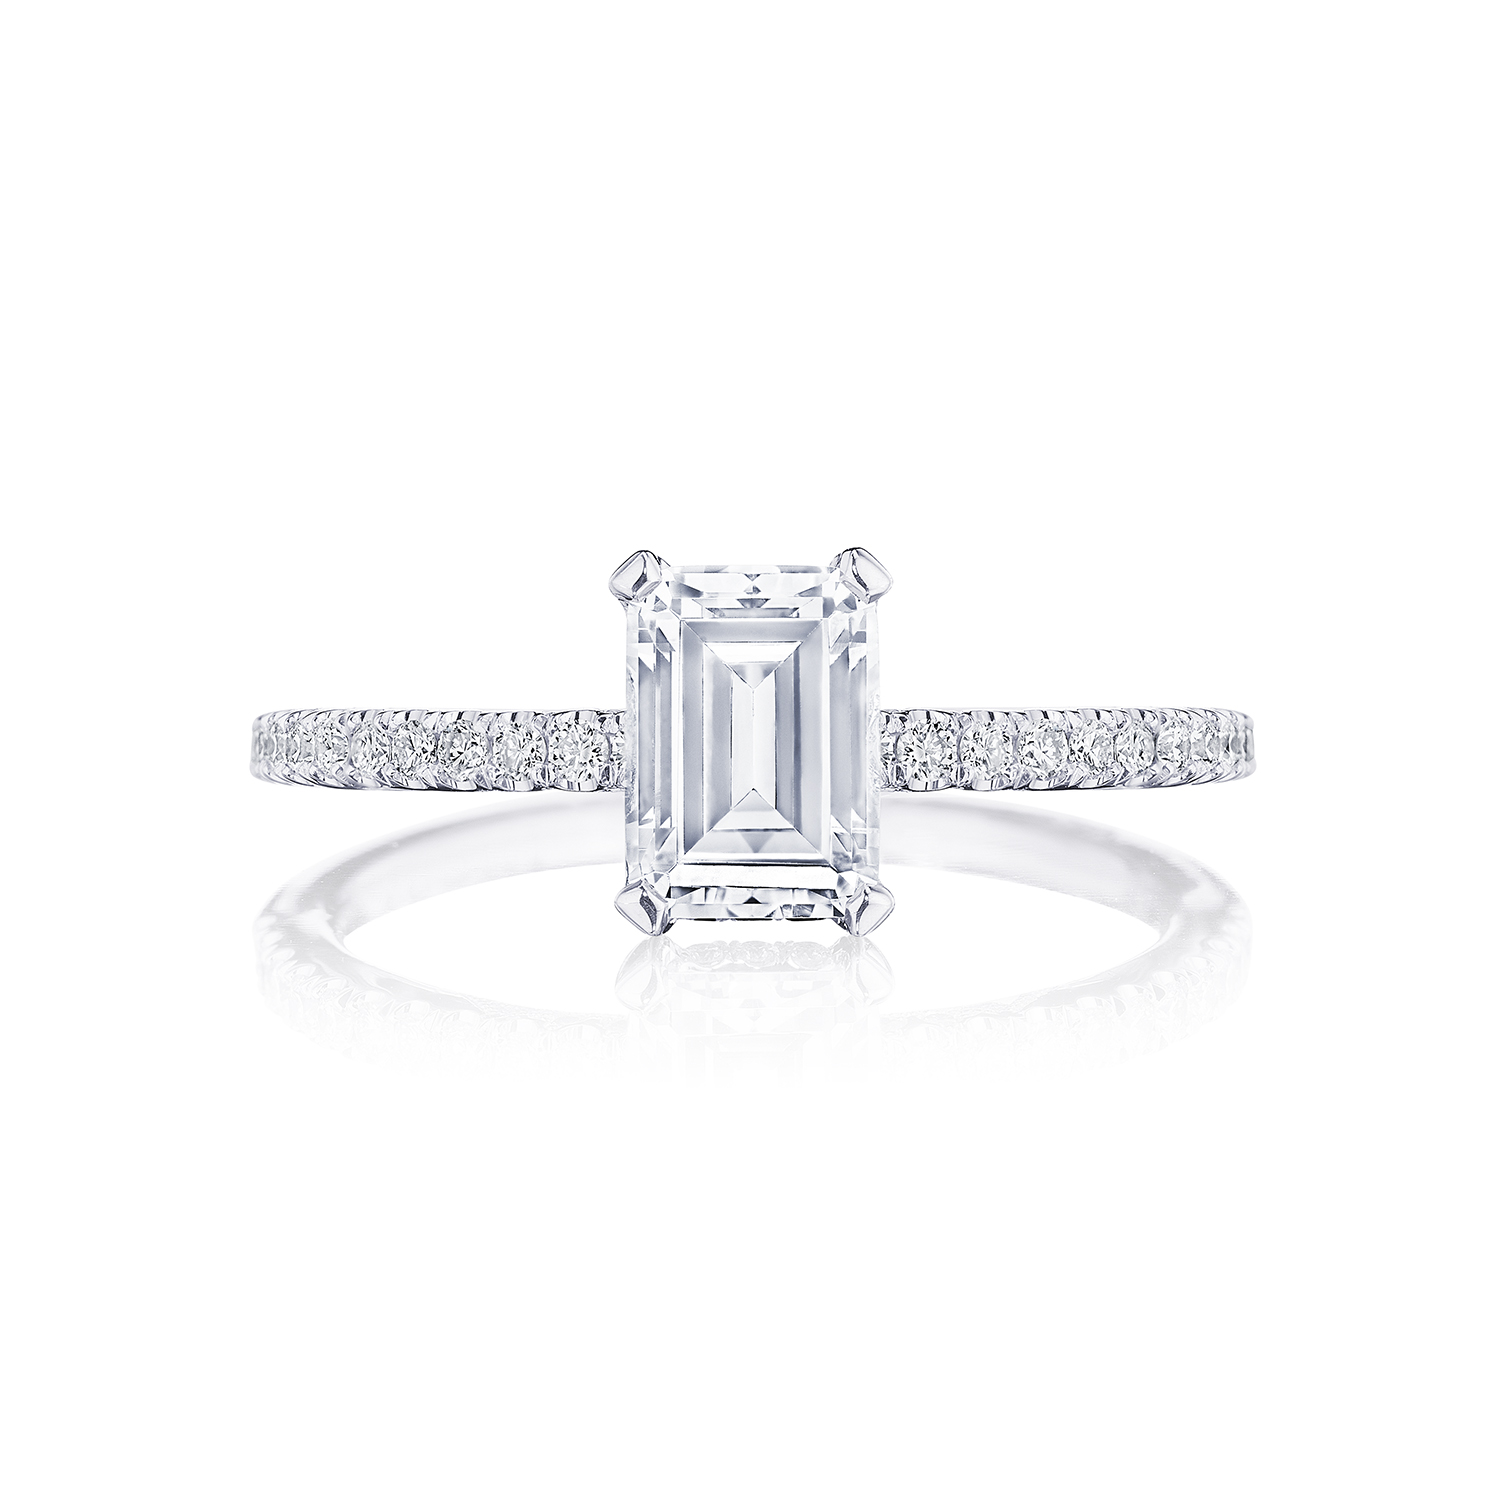 Tacori Side Stone Pave Set 18k White Gold Diamond Engagement Ring Designer Engagement Rings Fine Jewelry Arthur S Jewelers